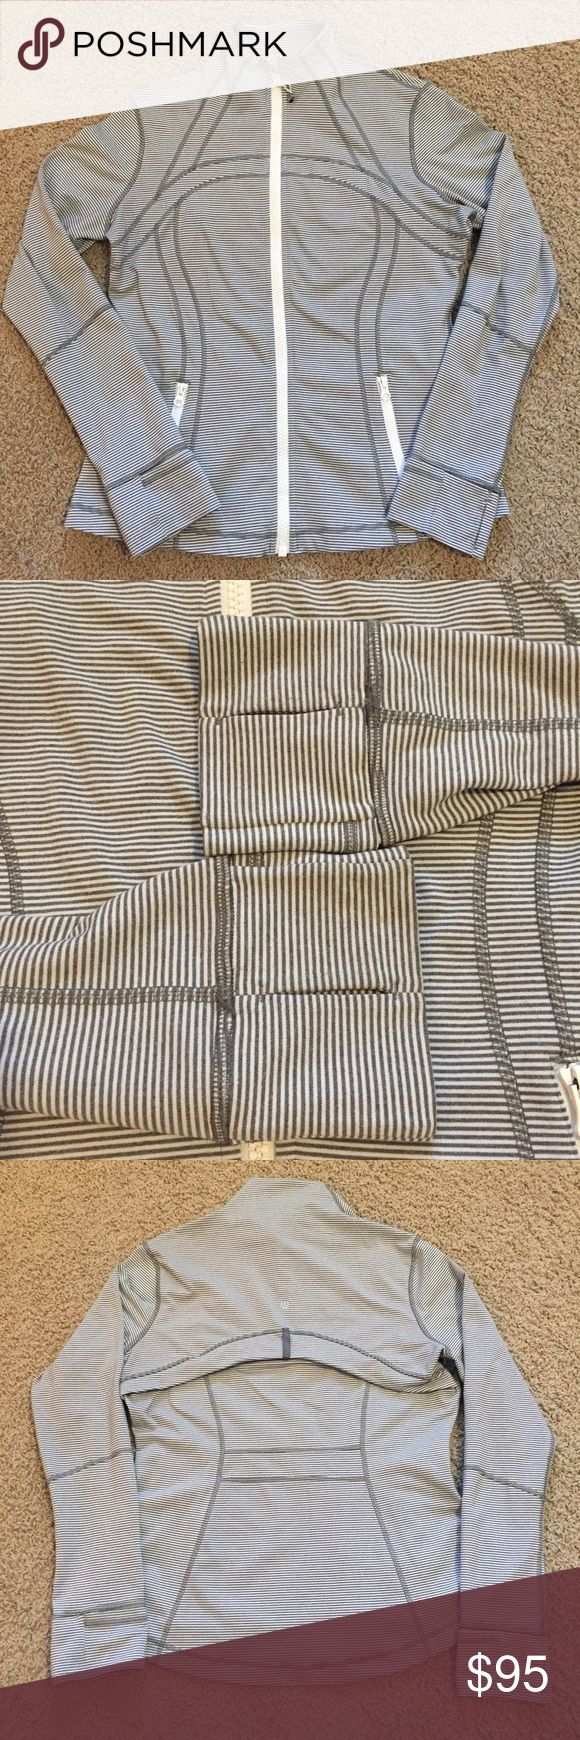 Lululemon Define Jacket Tonka Stripe Sz 12 Lululemon Define Jacket Tonka Stripe Heathered Slate White Sz 12.  VGUC.  See pic of hair tie/zip pull which is only flaw.  Price firm unless bundled. lululemon athletica Jackets & Coats